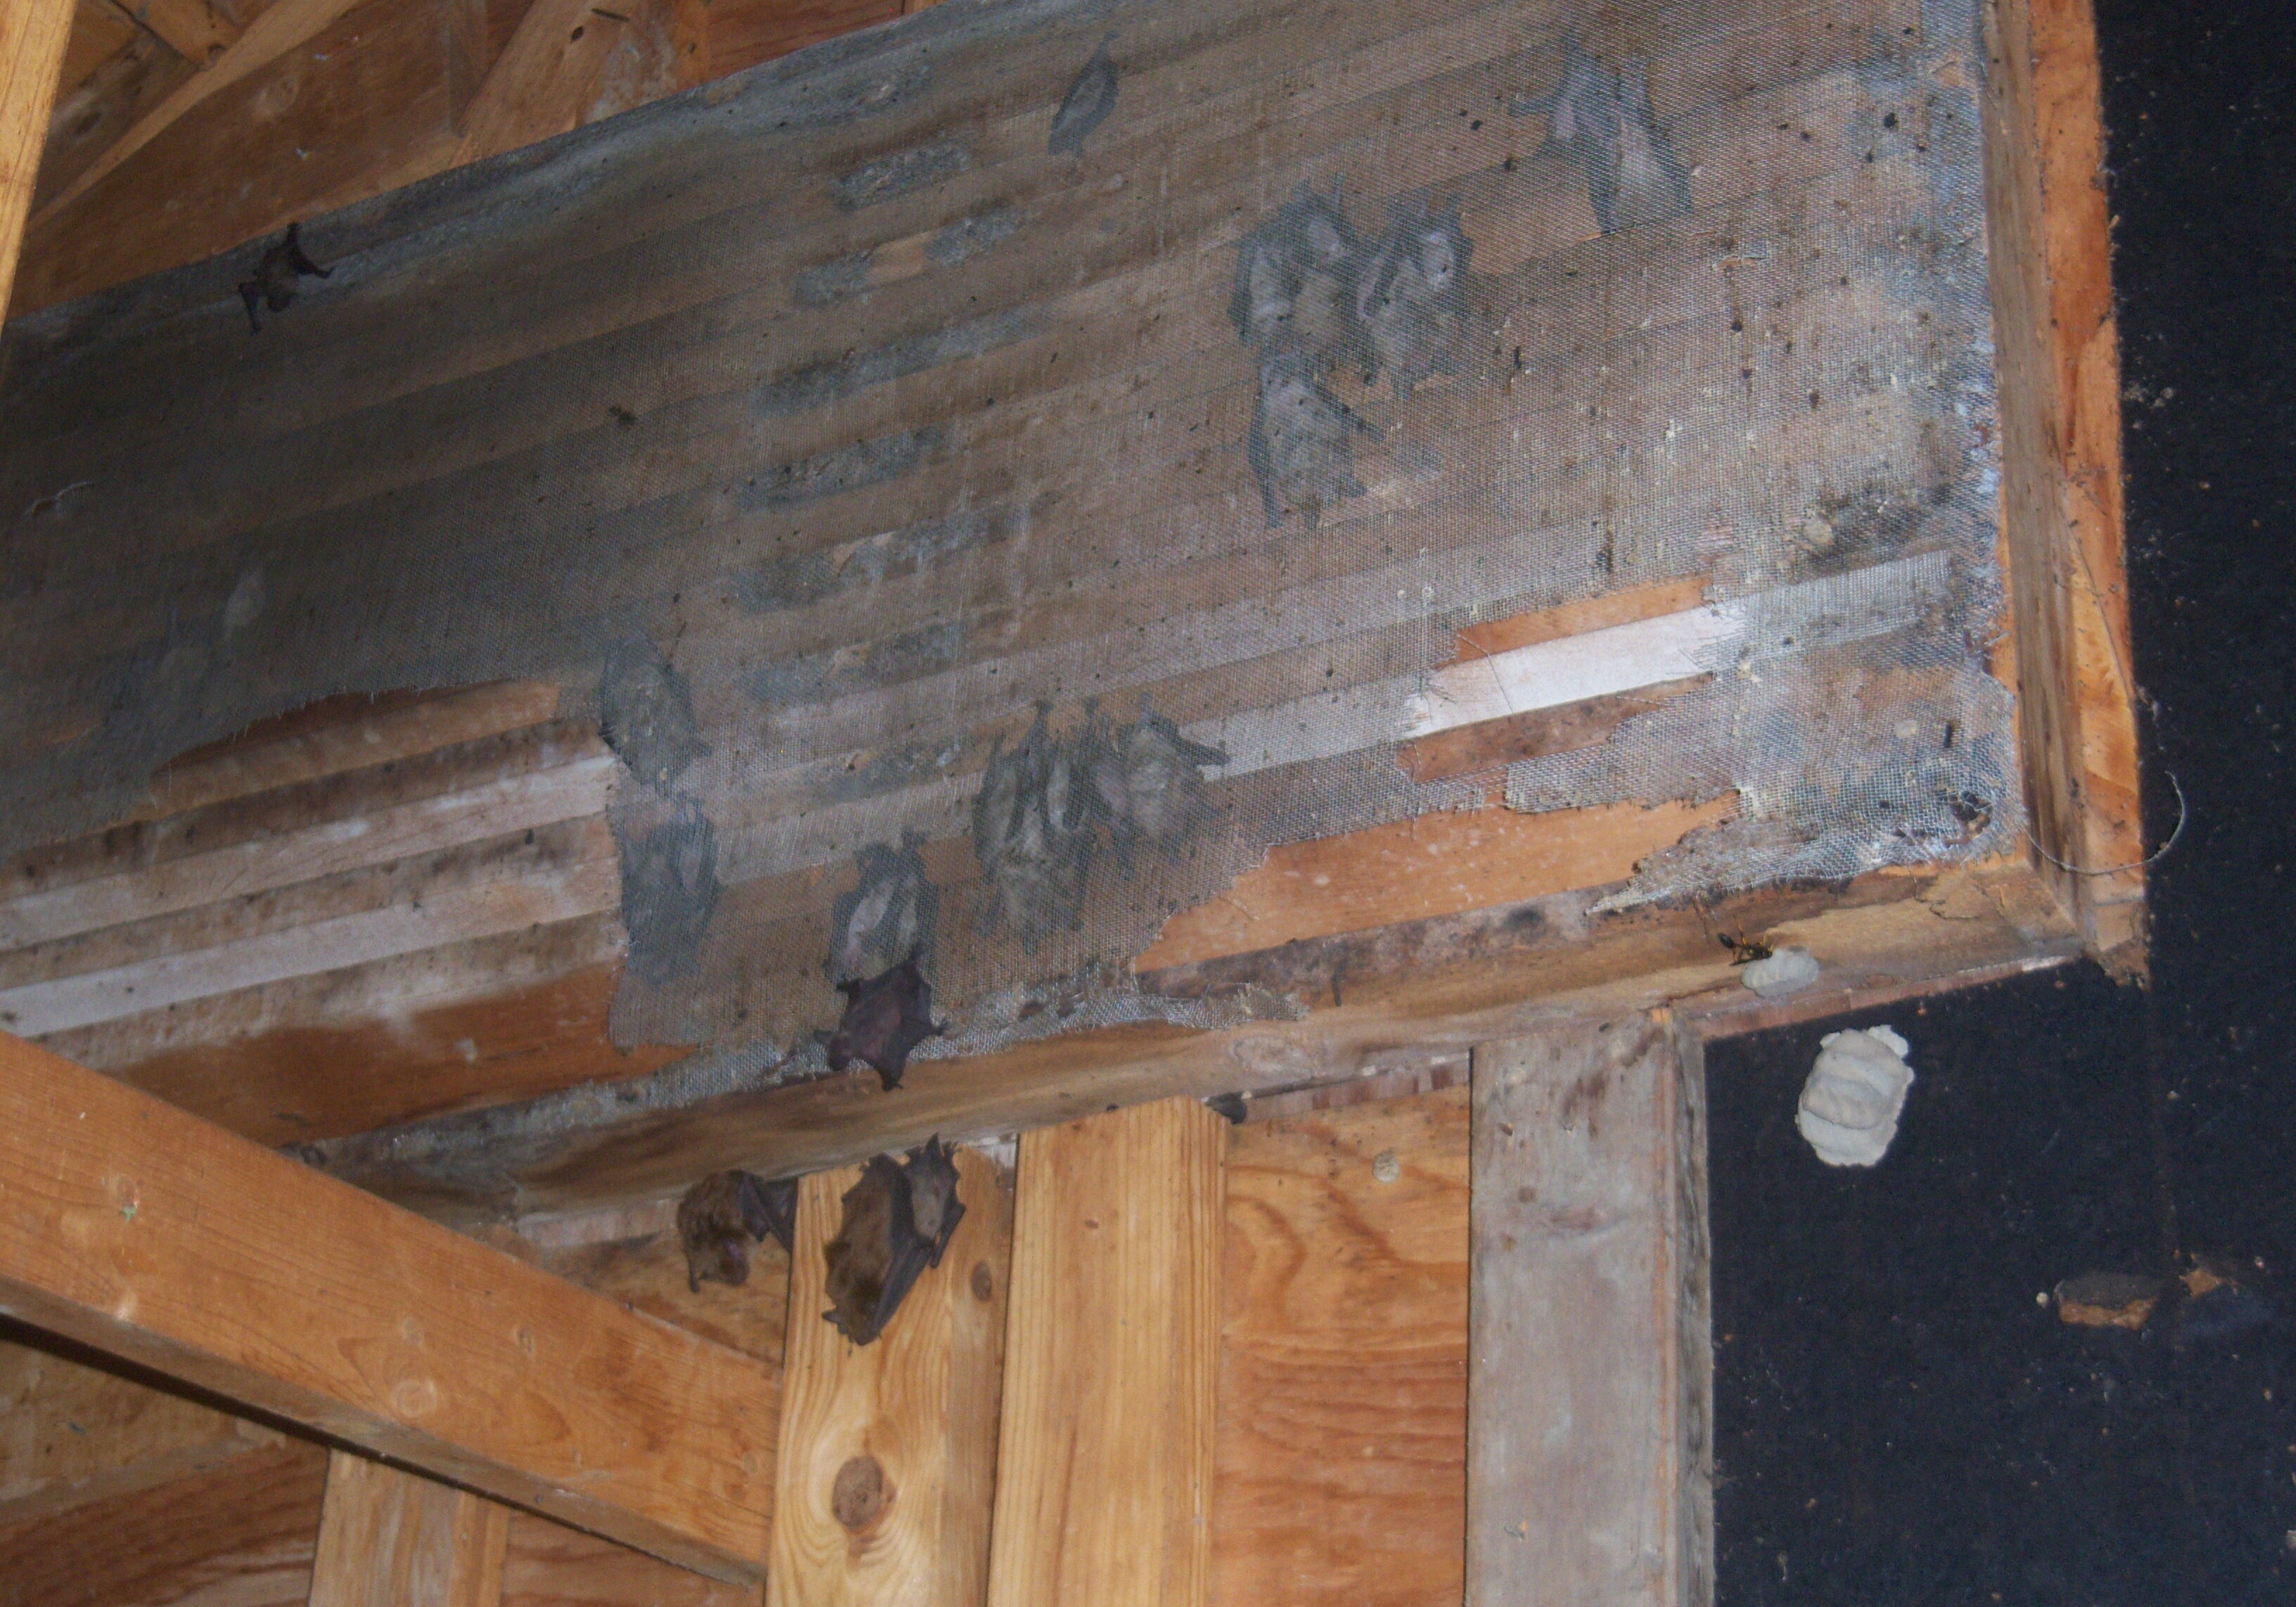 bats in the vent